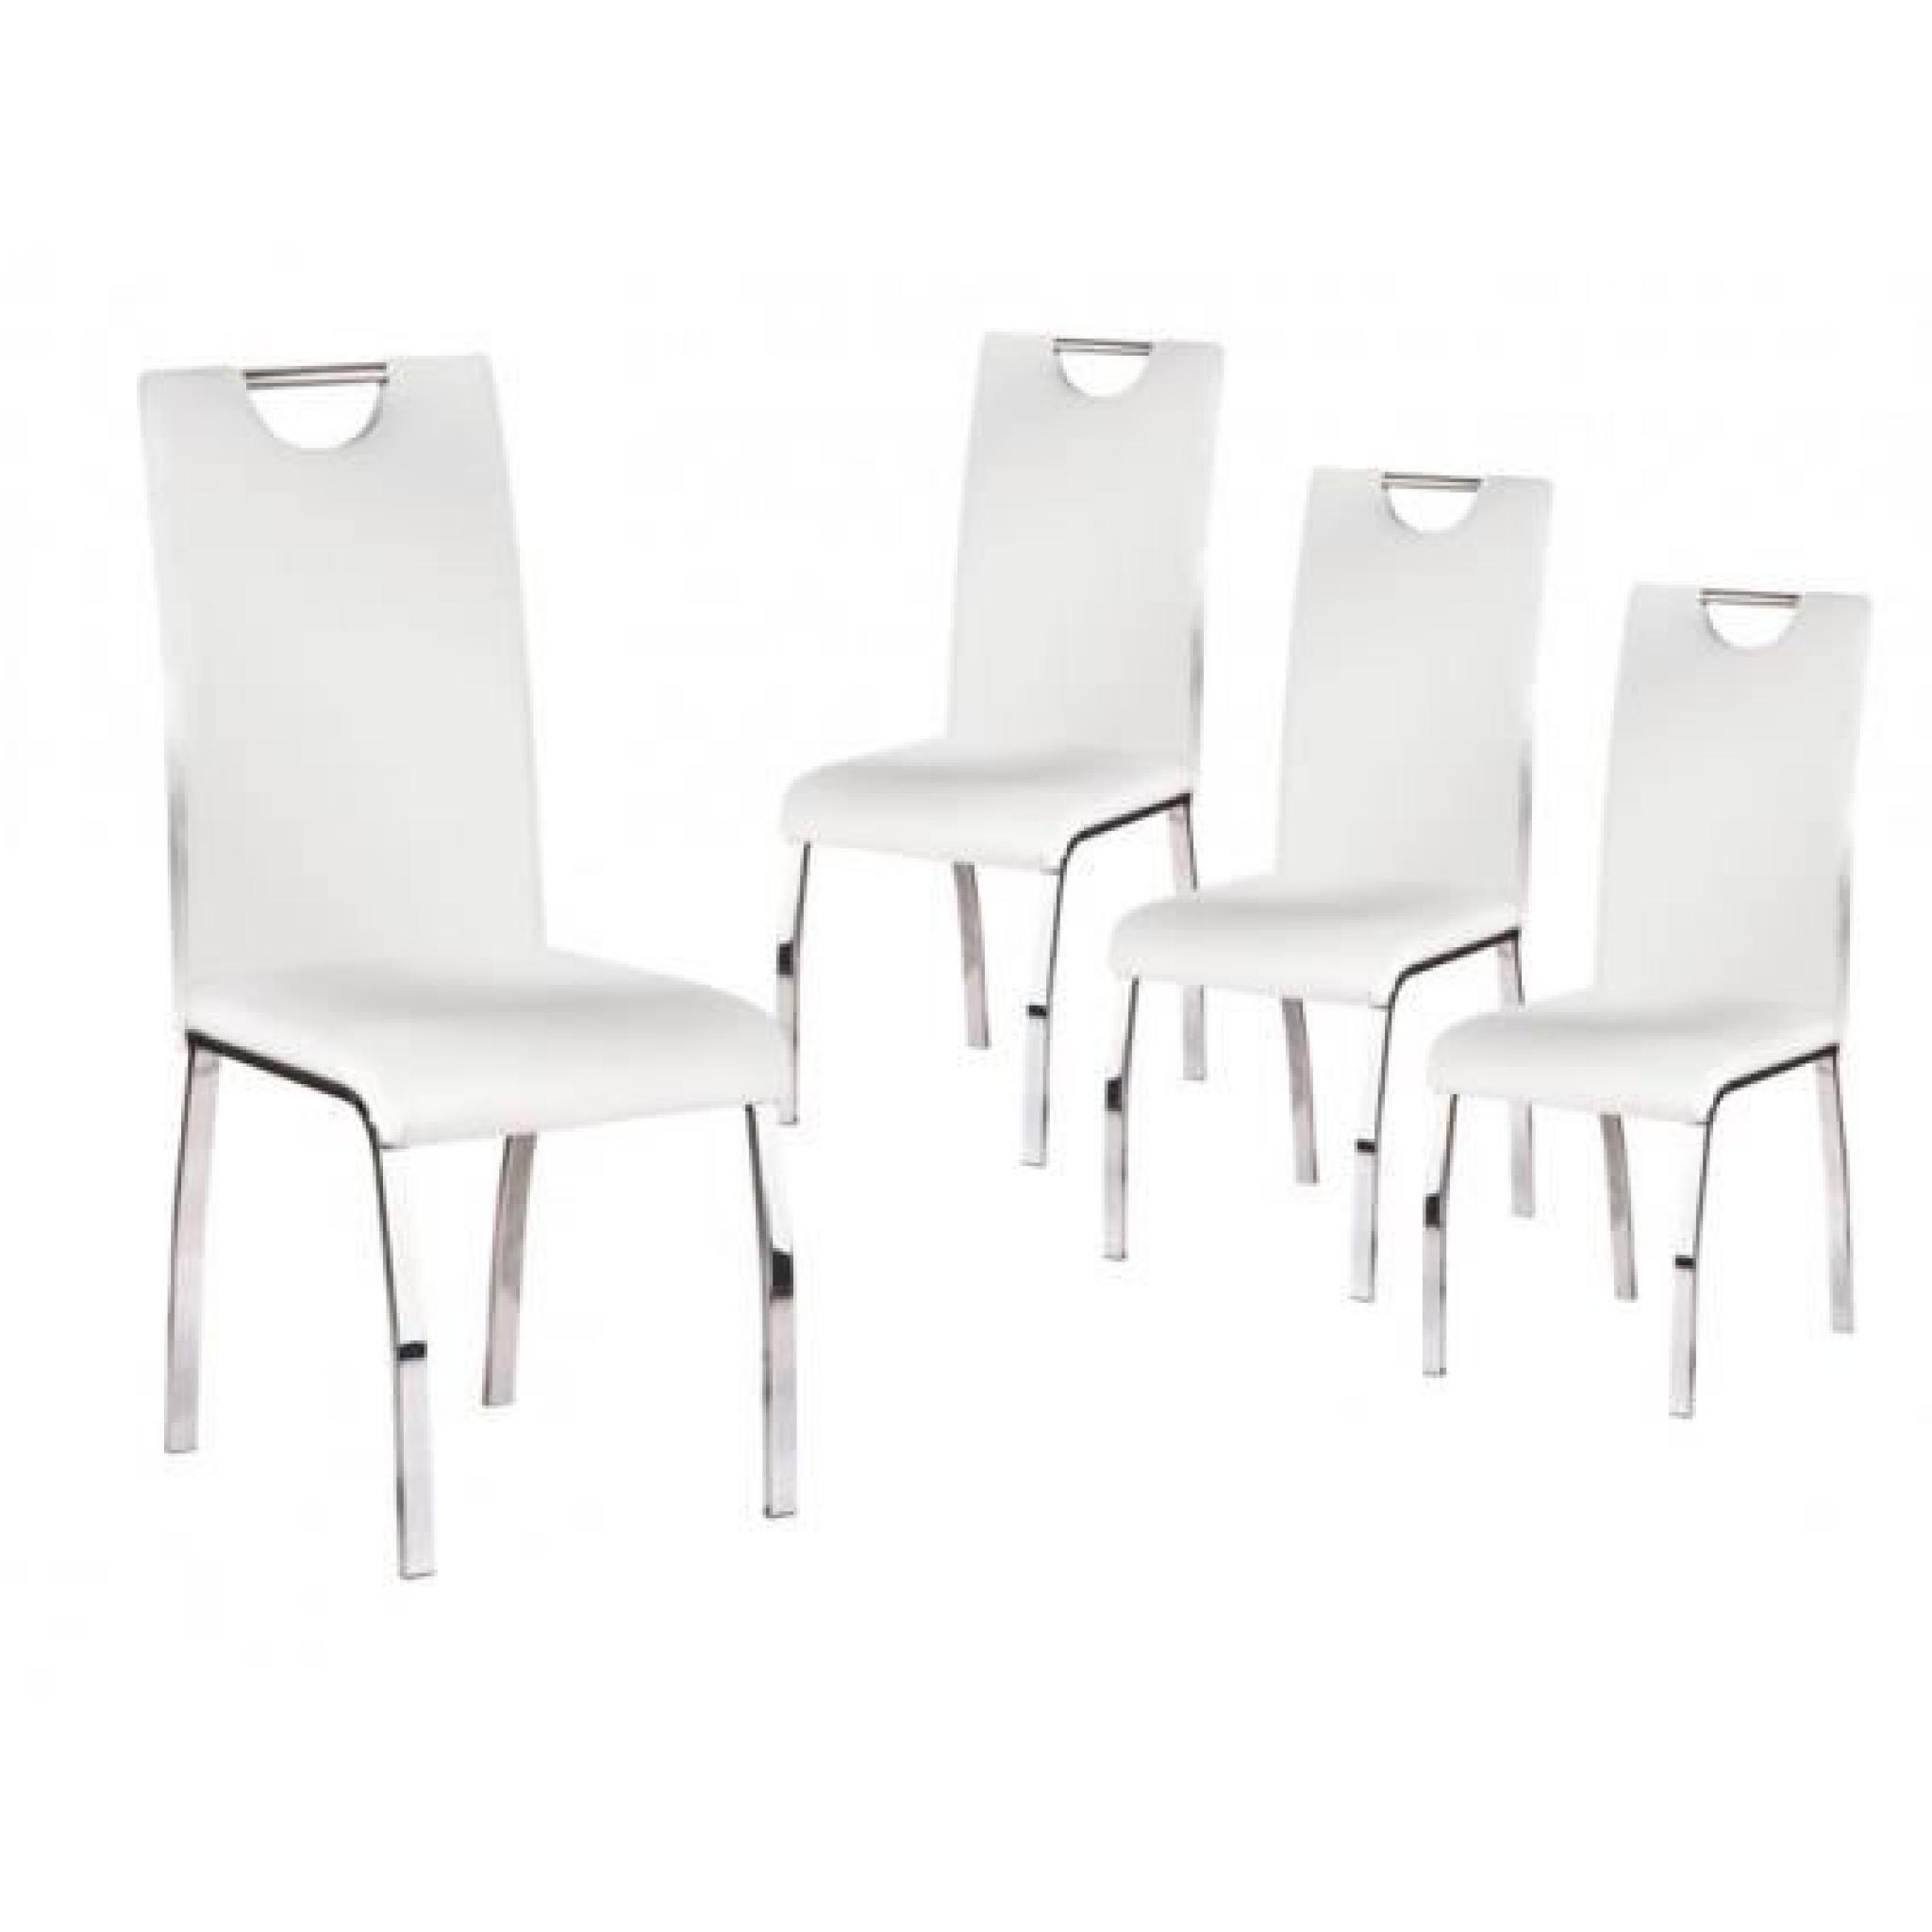 Cooper Lot 4 Chaises Blanches Achat Vente Chaise Salle A Manger